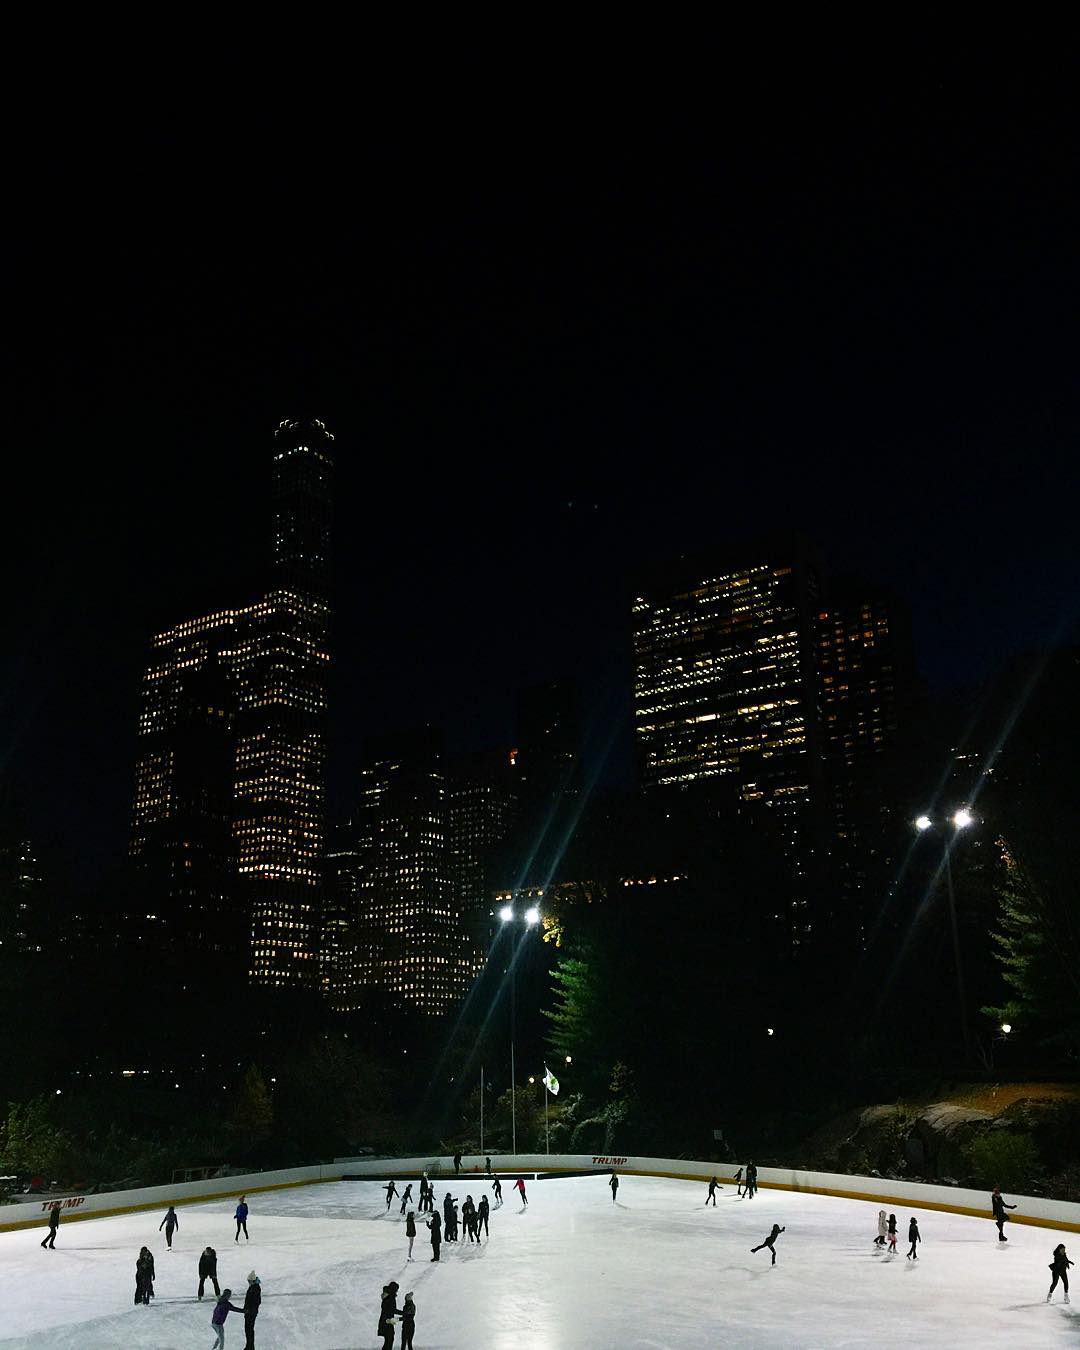 Night centralpark newyork manhattan celinemarks